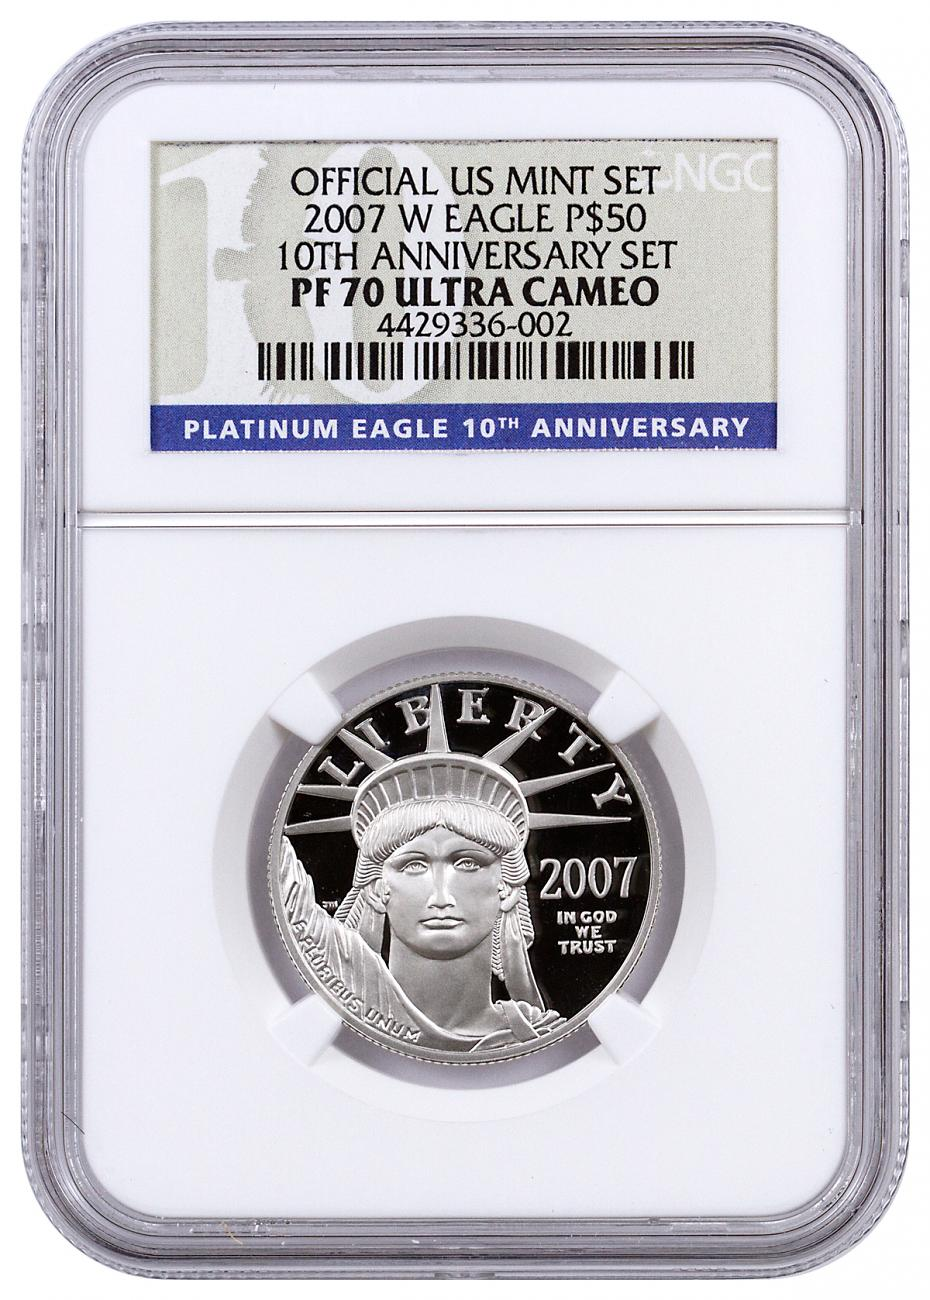 2007-W $50 1/2 oz. Proof American Platinum Eagle - From 10th Anniversary Set - NGC PF70 UC